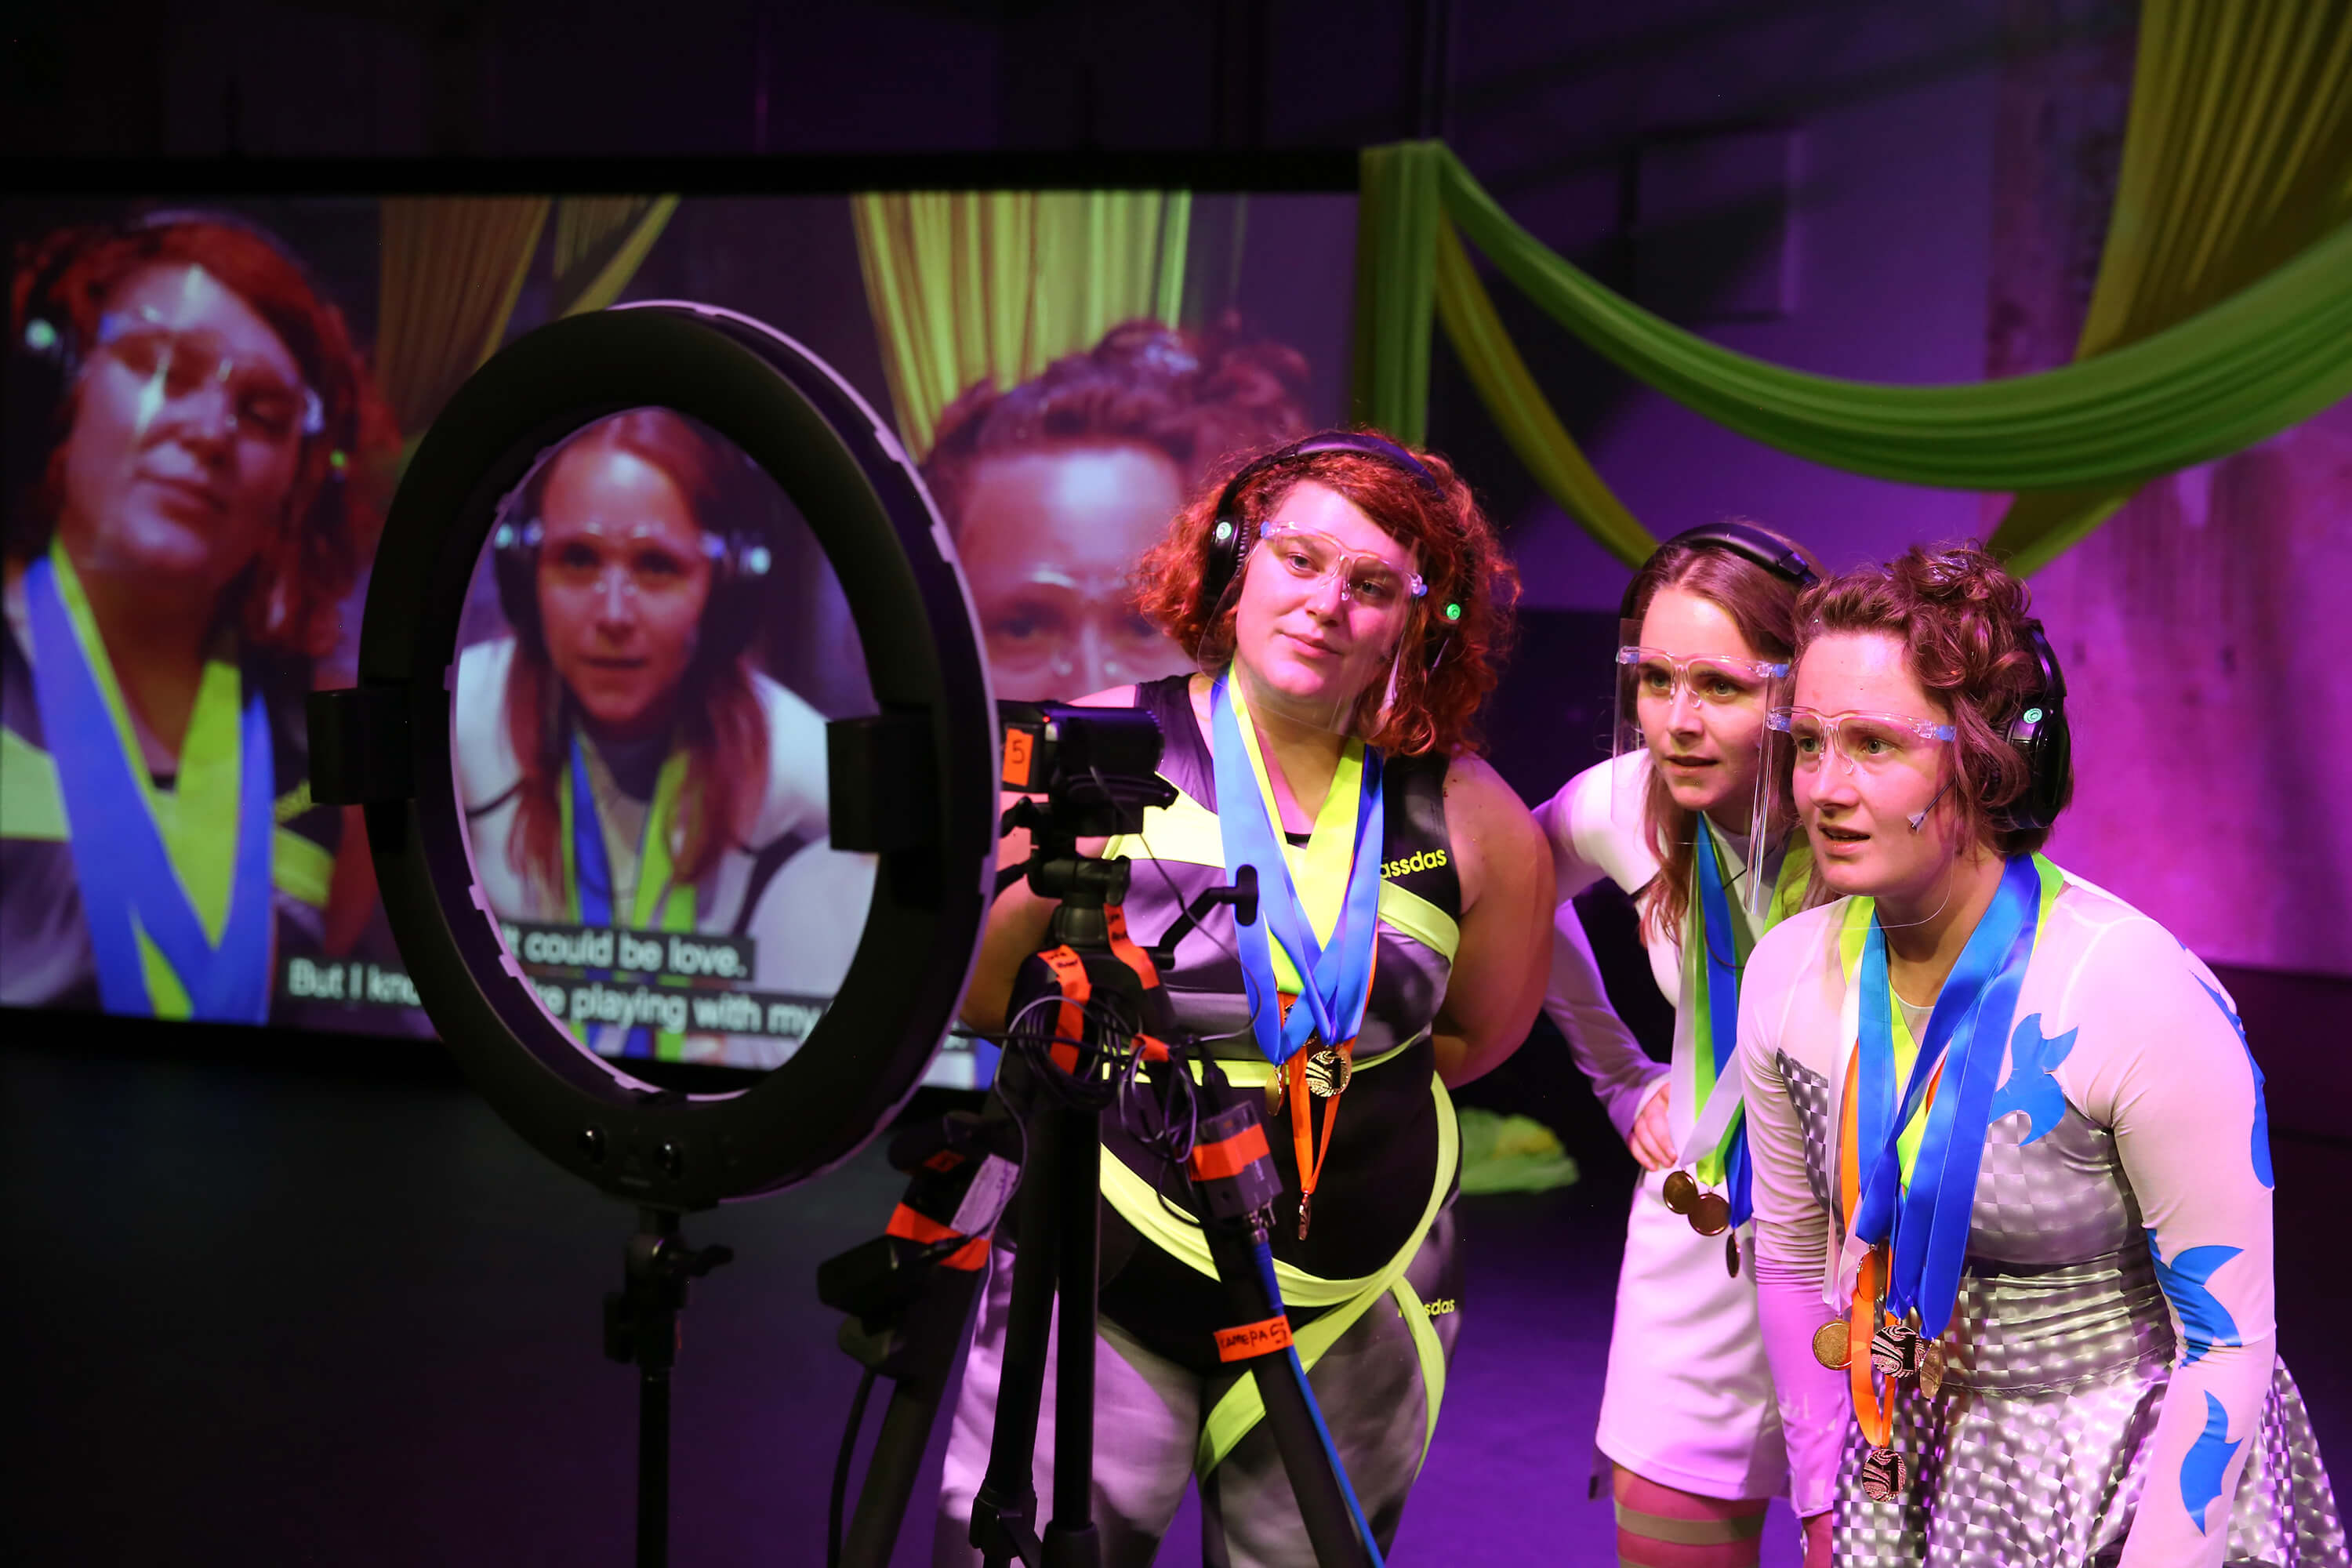 Three women in front of a colourful background are looking into a camera; their image is visible on a screen behind them.